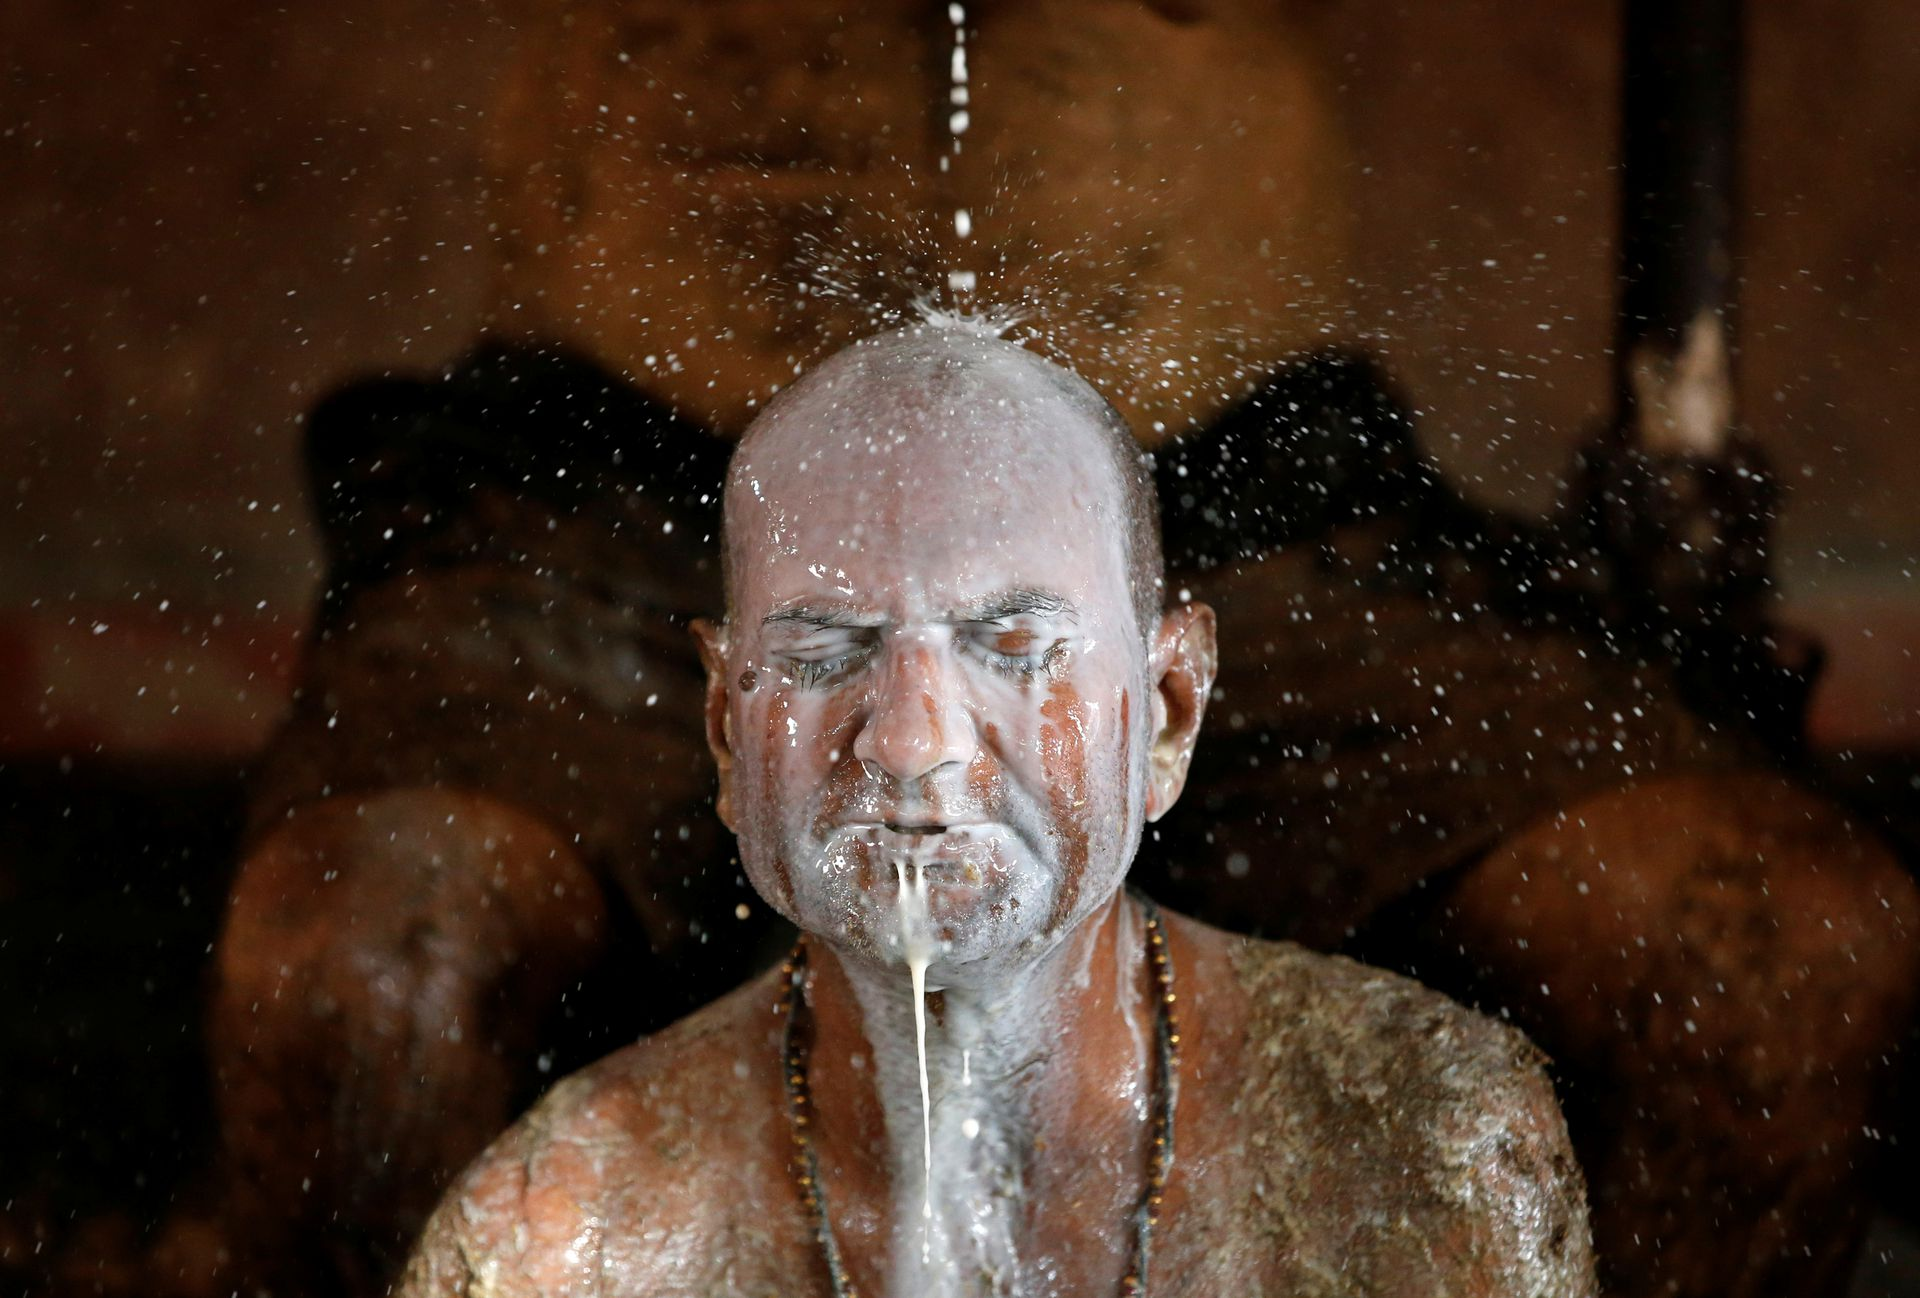 Ashok Oza bathes in cow milk to remove cow dung from his body during 'cow dung therapy', believing it will boost his immunity to defend against the coronavirus disease (COVID-19) at the Shree Swaminarayan Gurukul Vishwavidya Pratishthanam Gaushala or cow shelter on the outskirts of Ahmedabad, India, May 9, 2021. Photo: Reuters